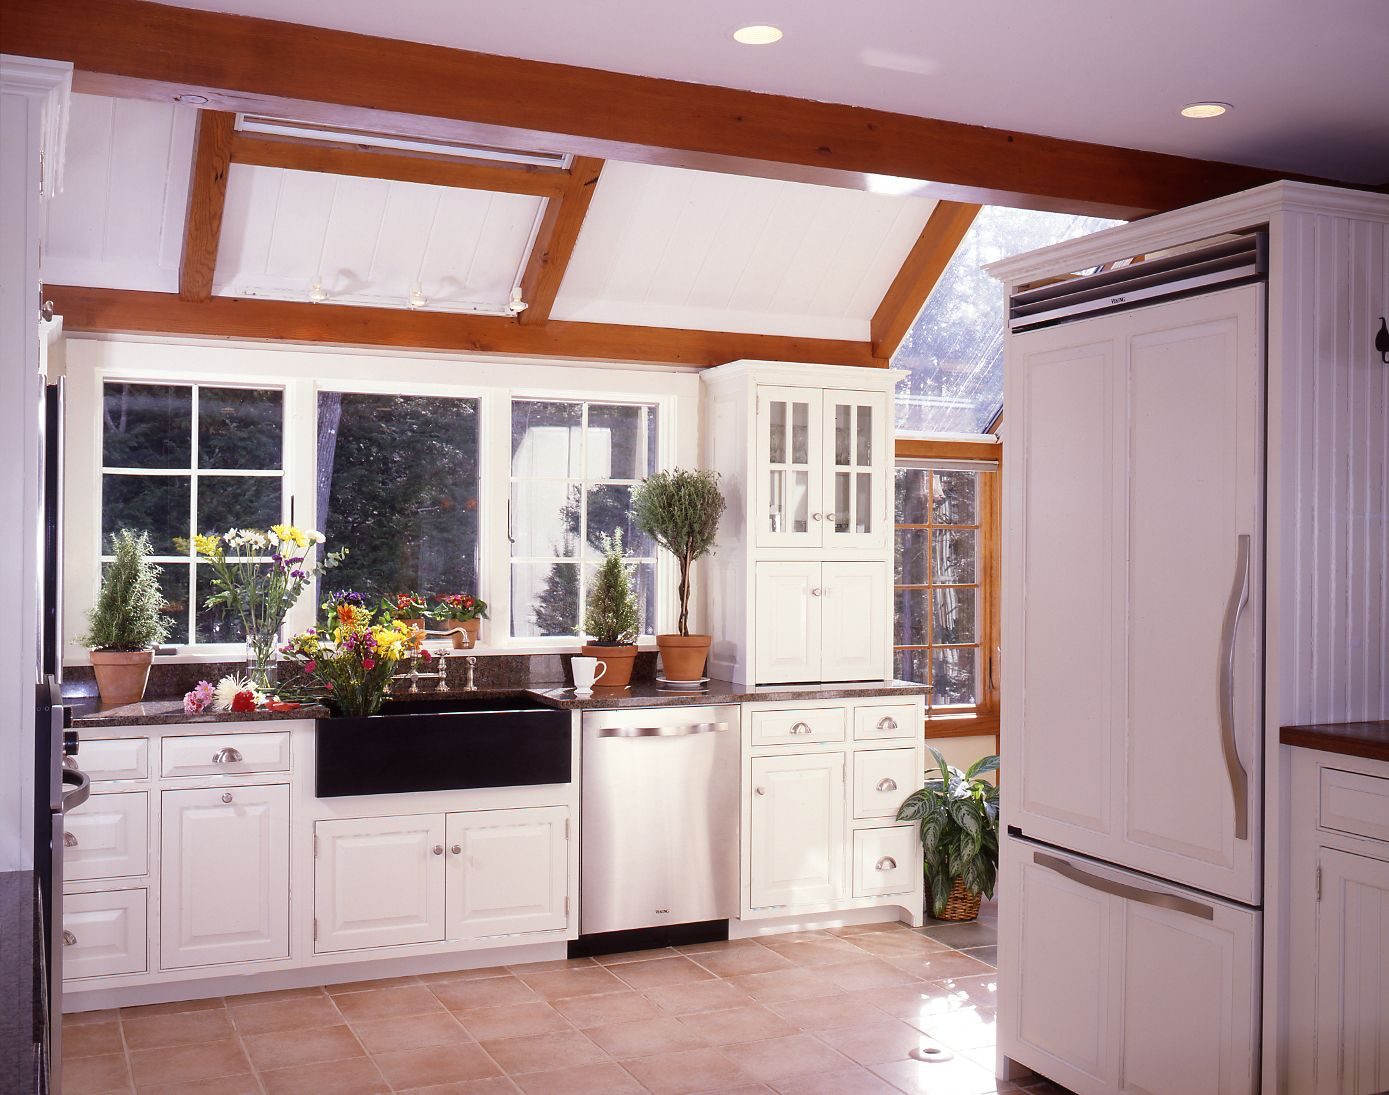 Alluring Additional Exposed Wooden Beams to Complete Small White Kitchen Remodel